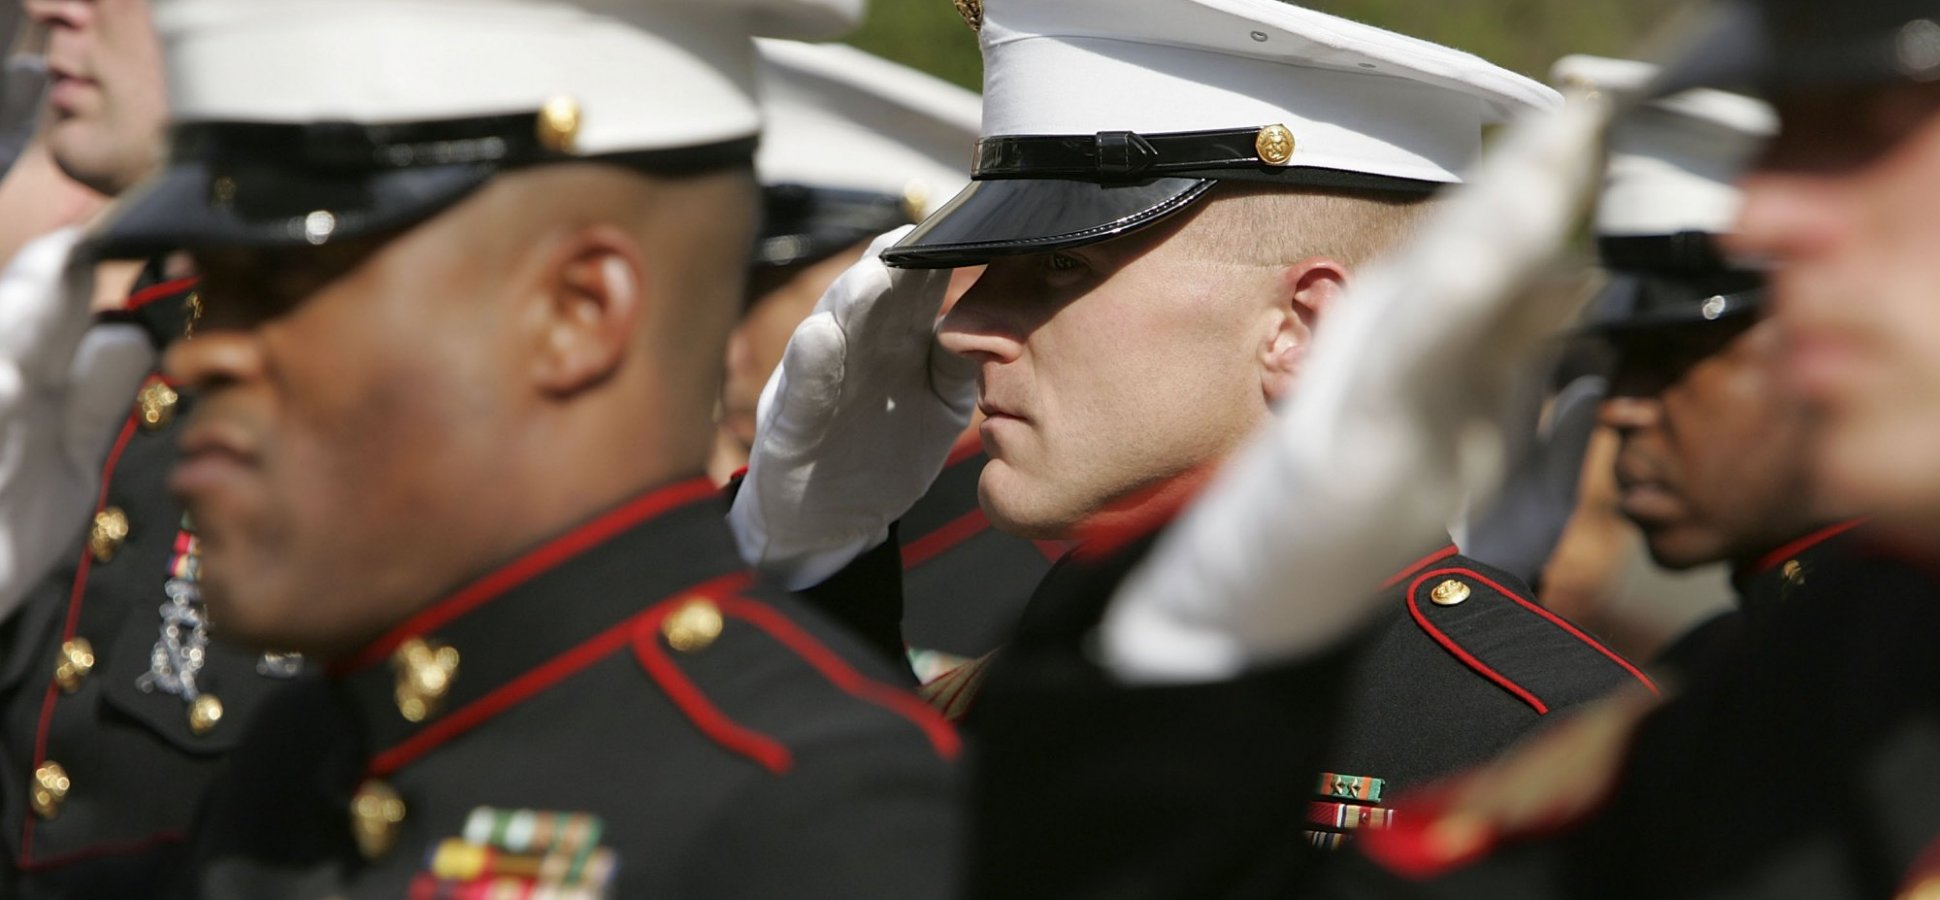 The U.S. Marine Corps Uses the 'Rule of 3' to Organize Almost Everything. Here's How Learning It 21 Years Ago Changed My Life